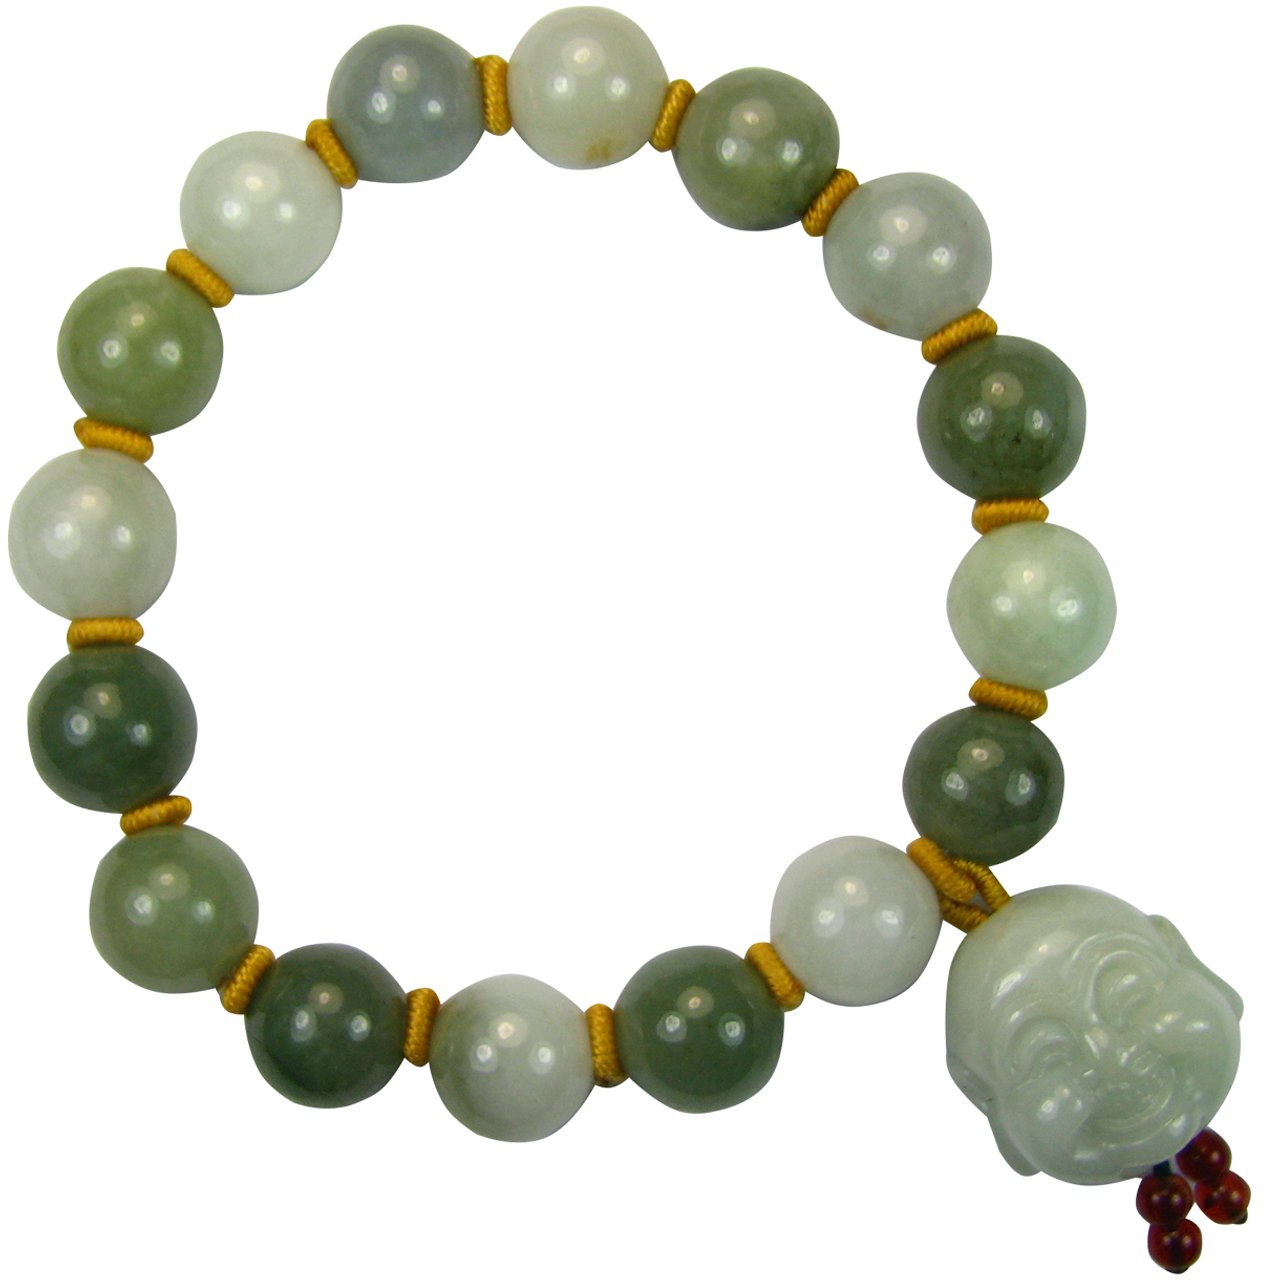 Dahlia Laughing Buddha Jade 12mm Bead Bracelet Genuine Certified Grade A Jadeite, 8'' by Dahlia